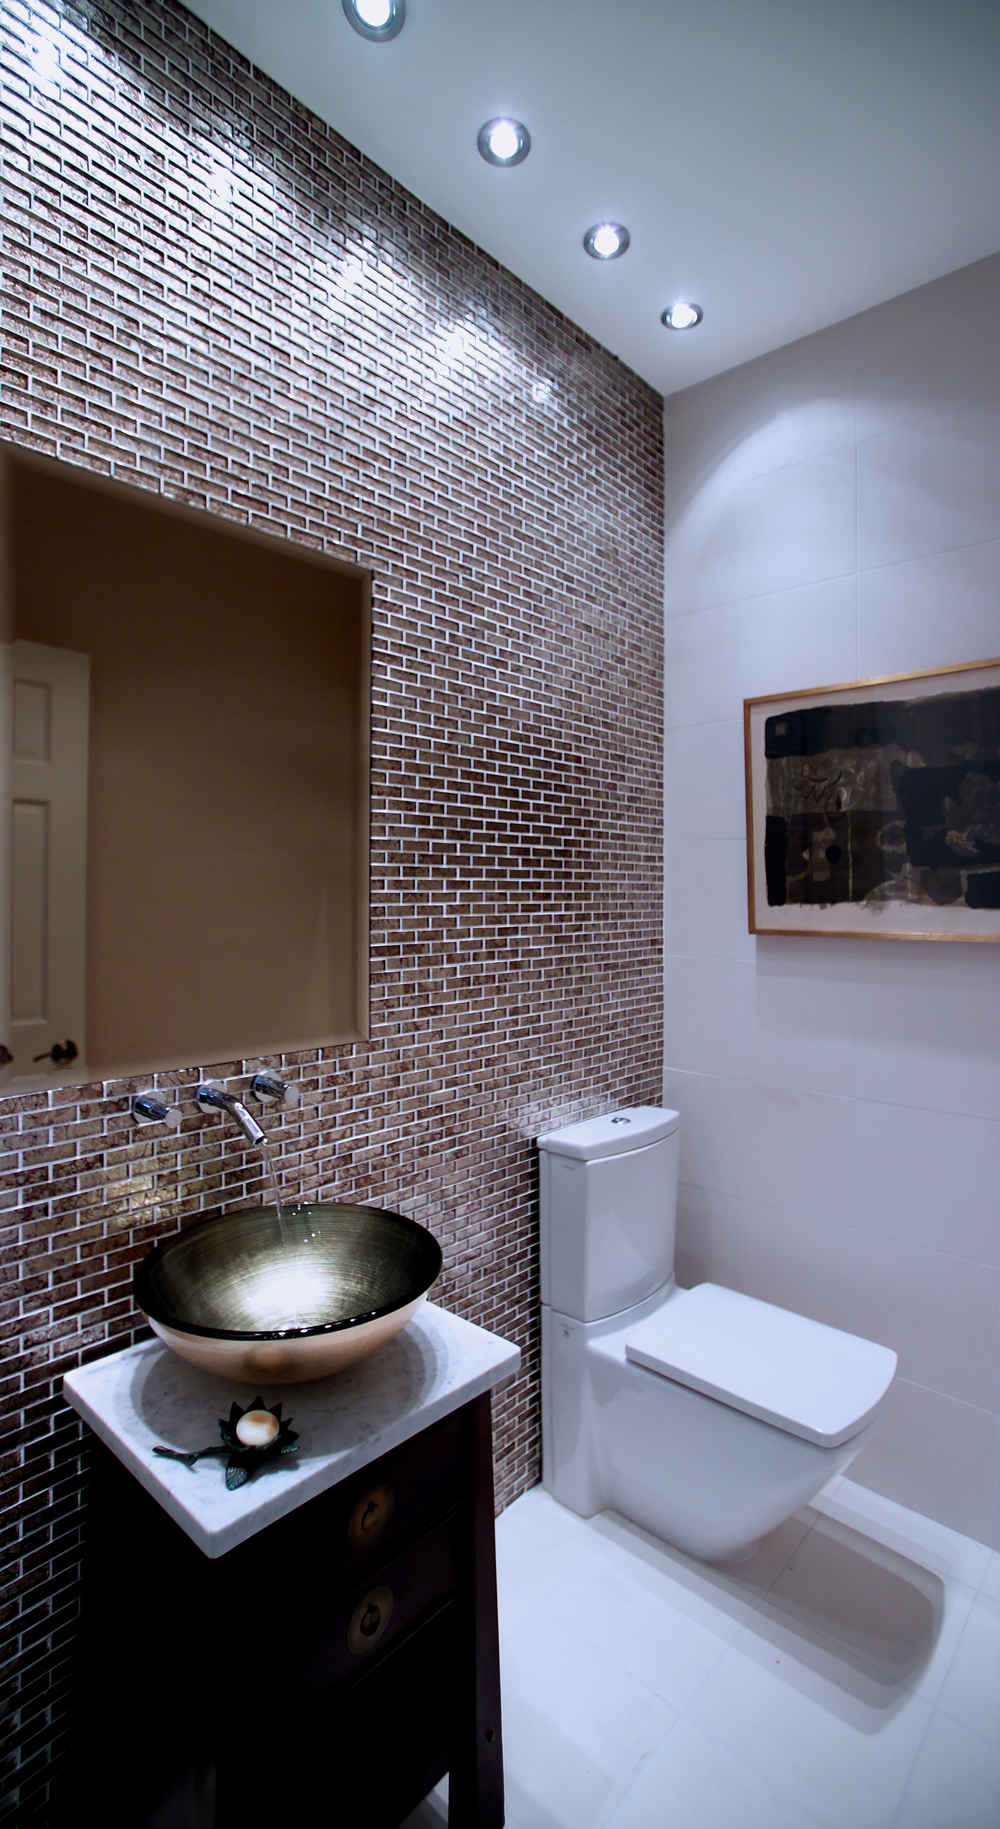 Powder Room 1 - Overall View.jpg